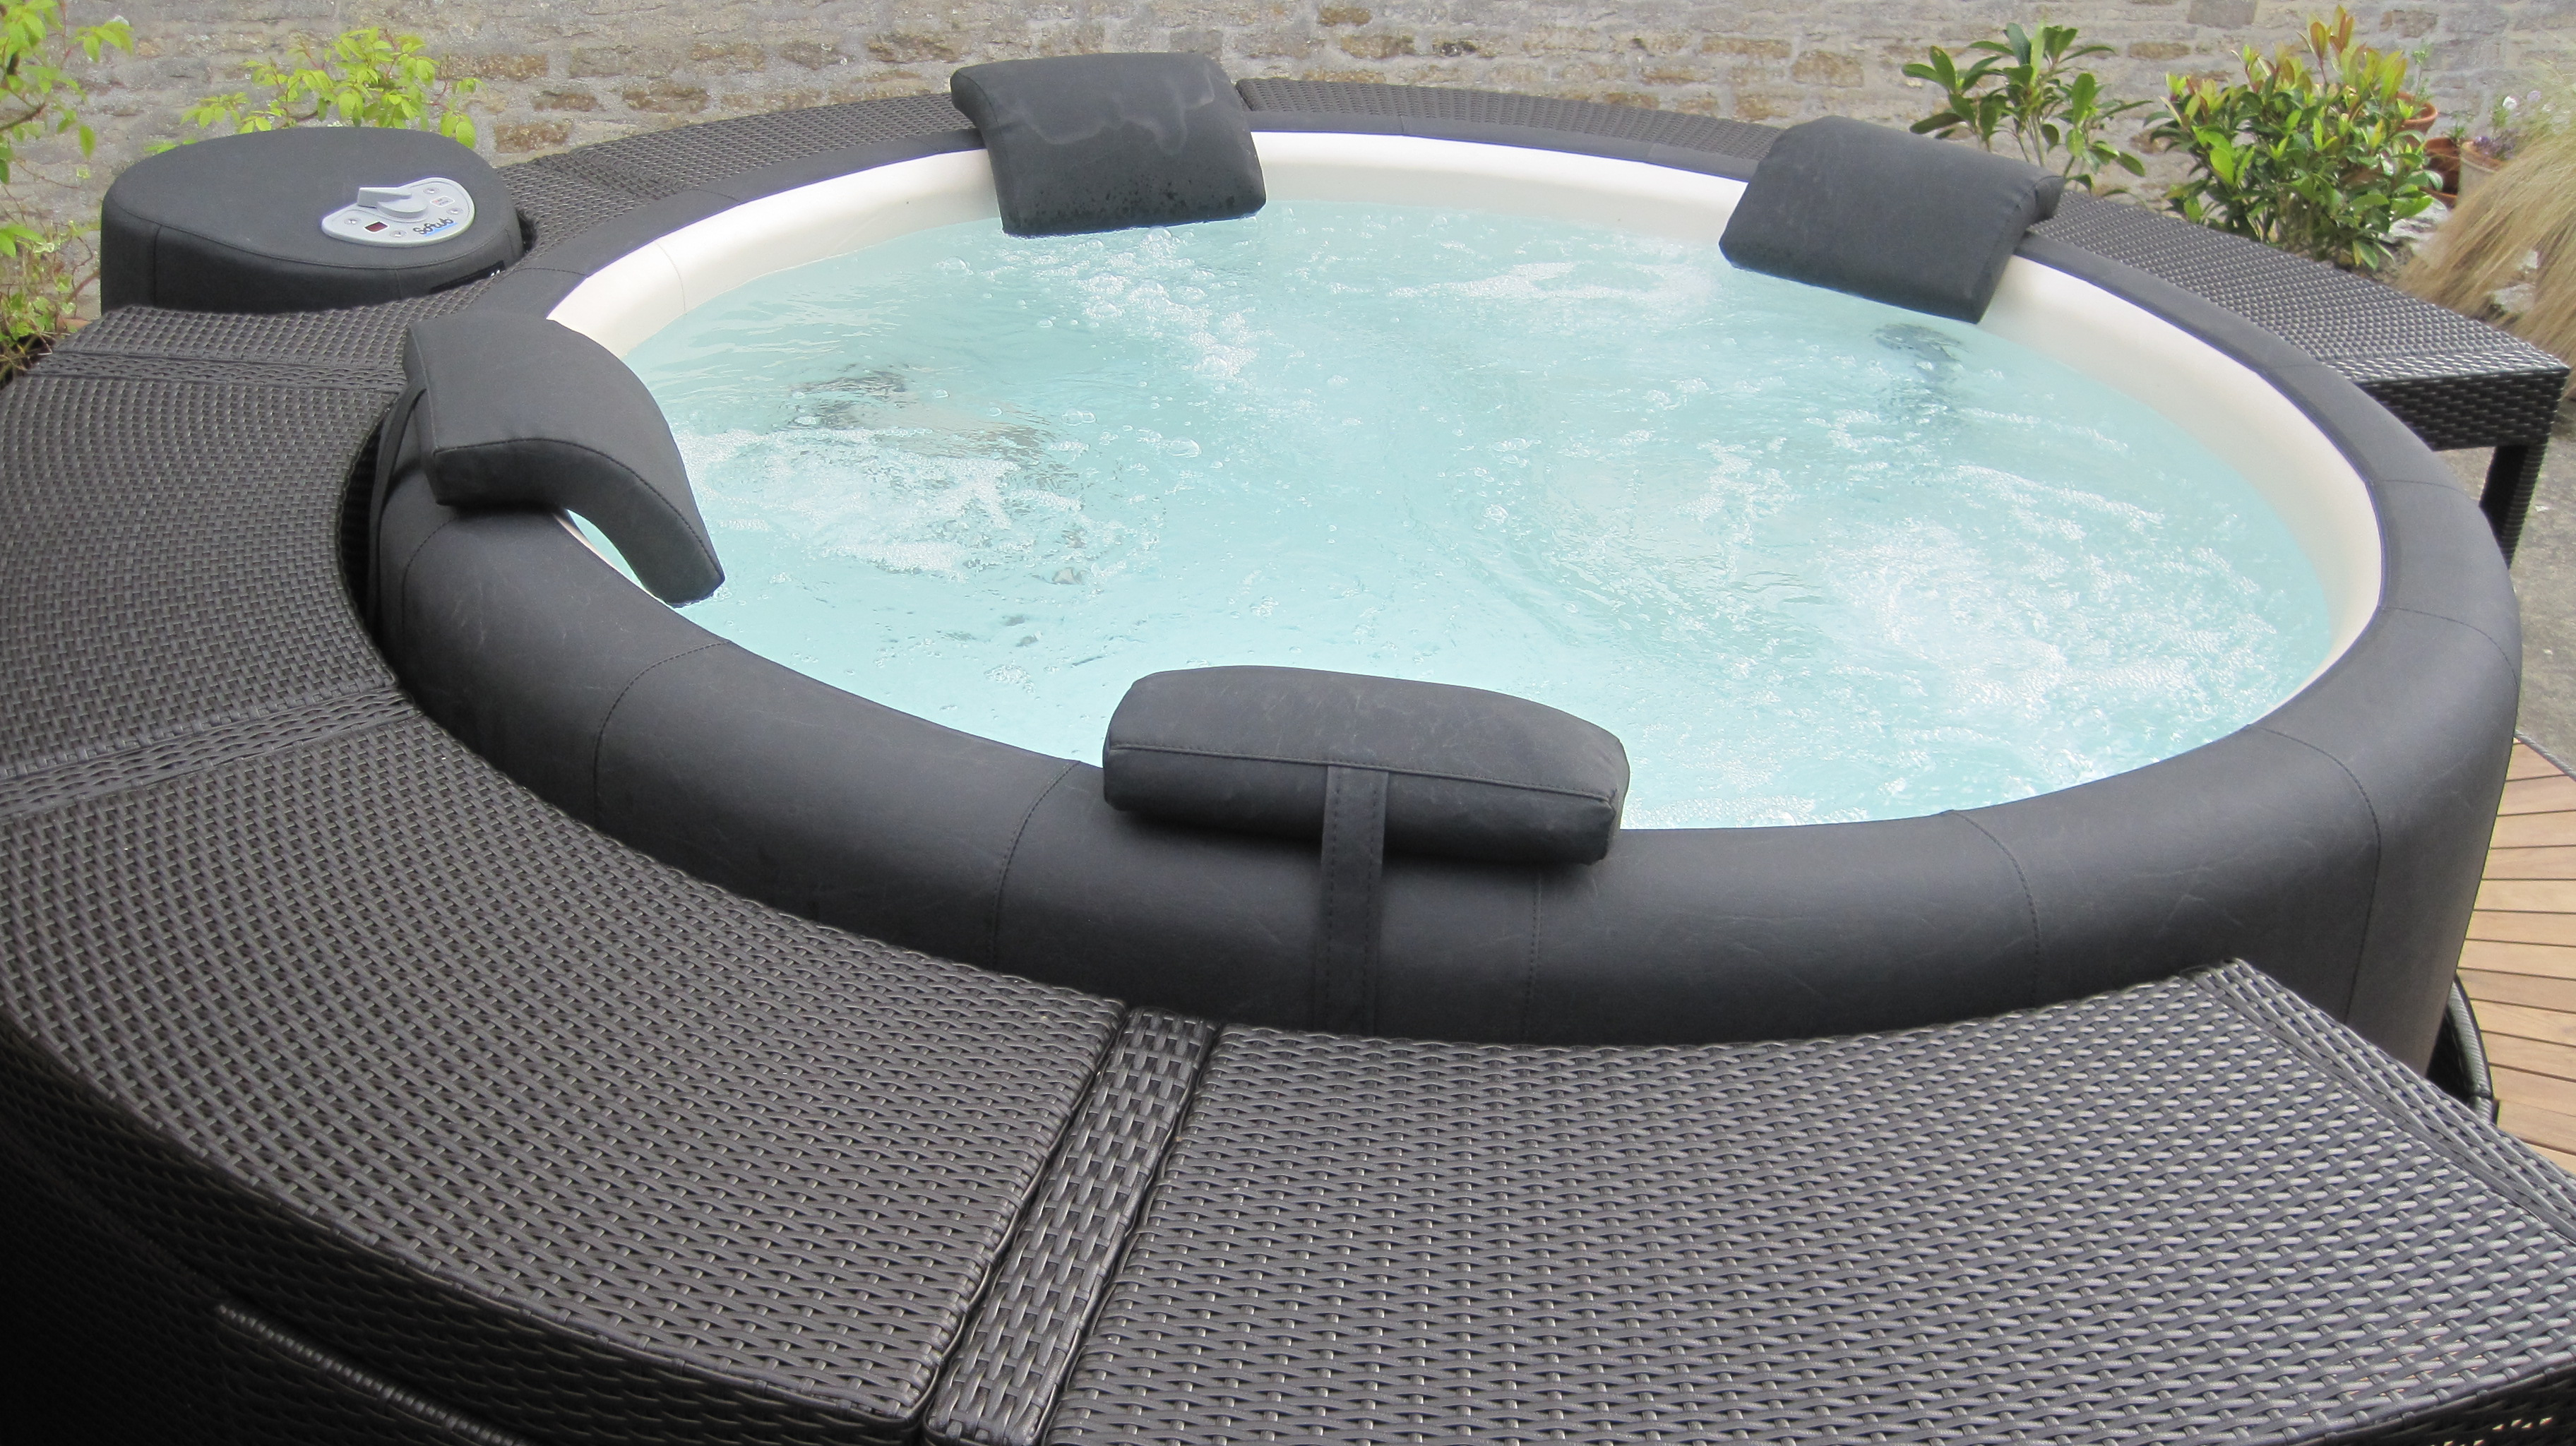 insider hot soft tubs tub sided classifieds softub